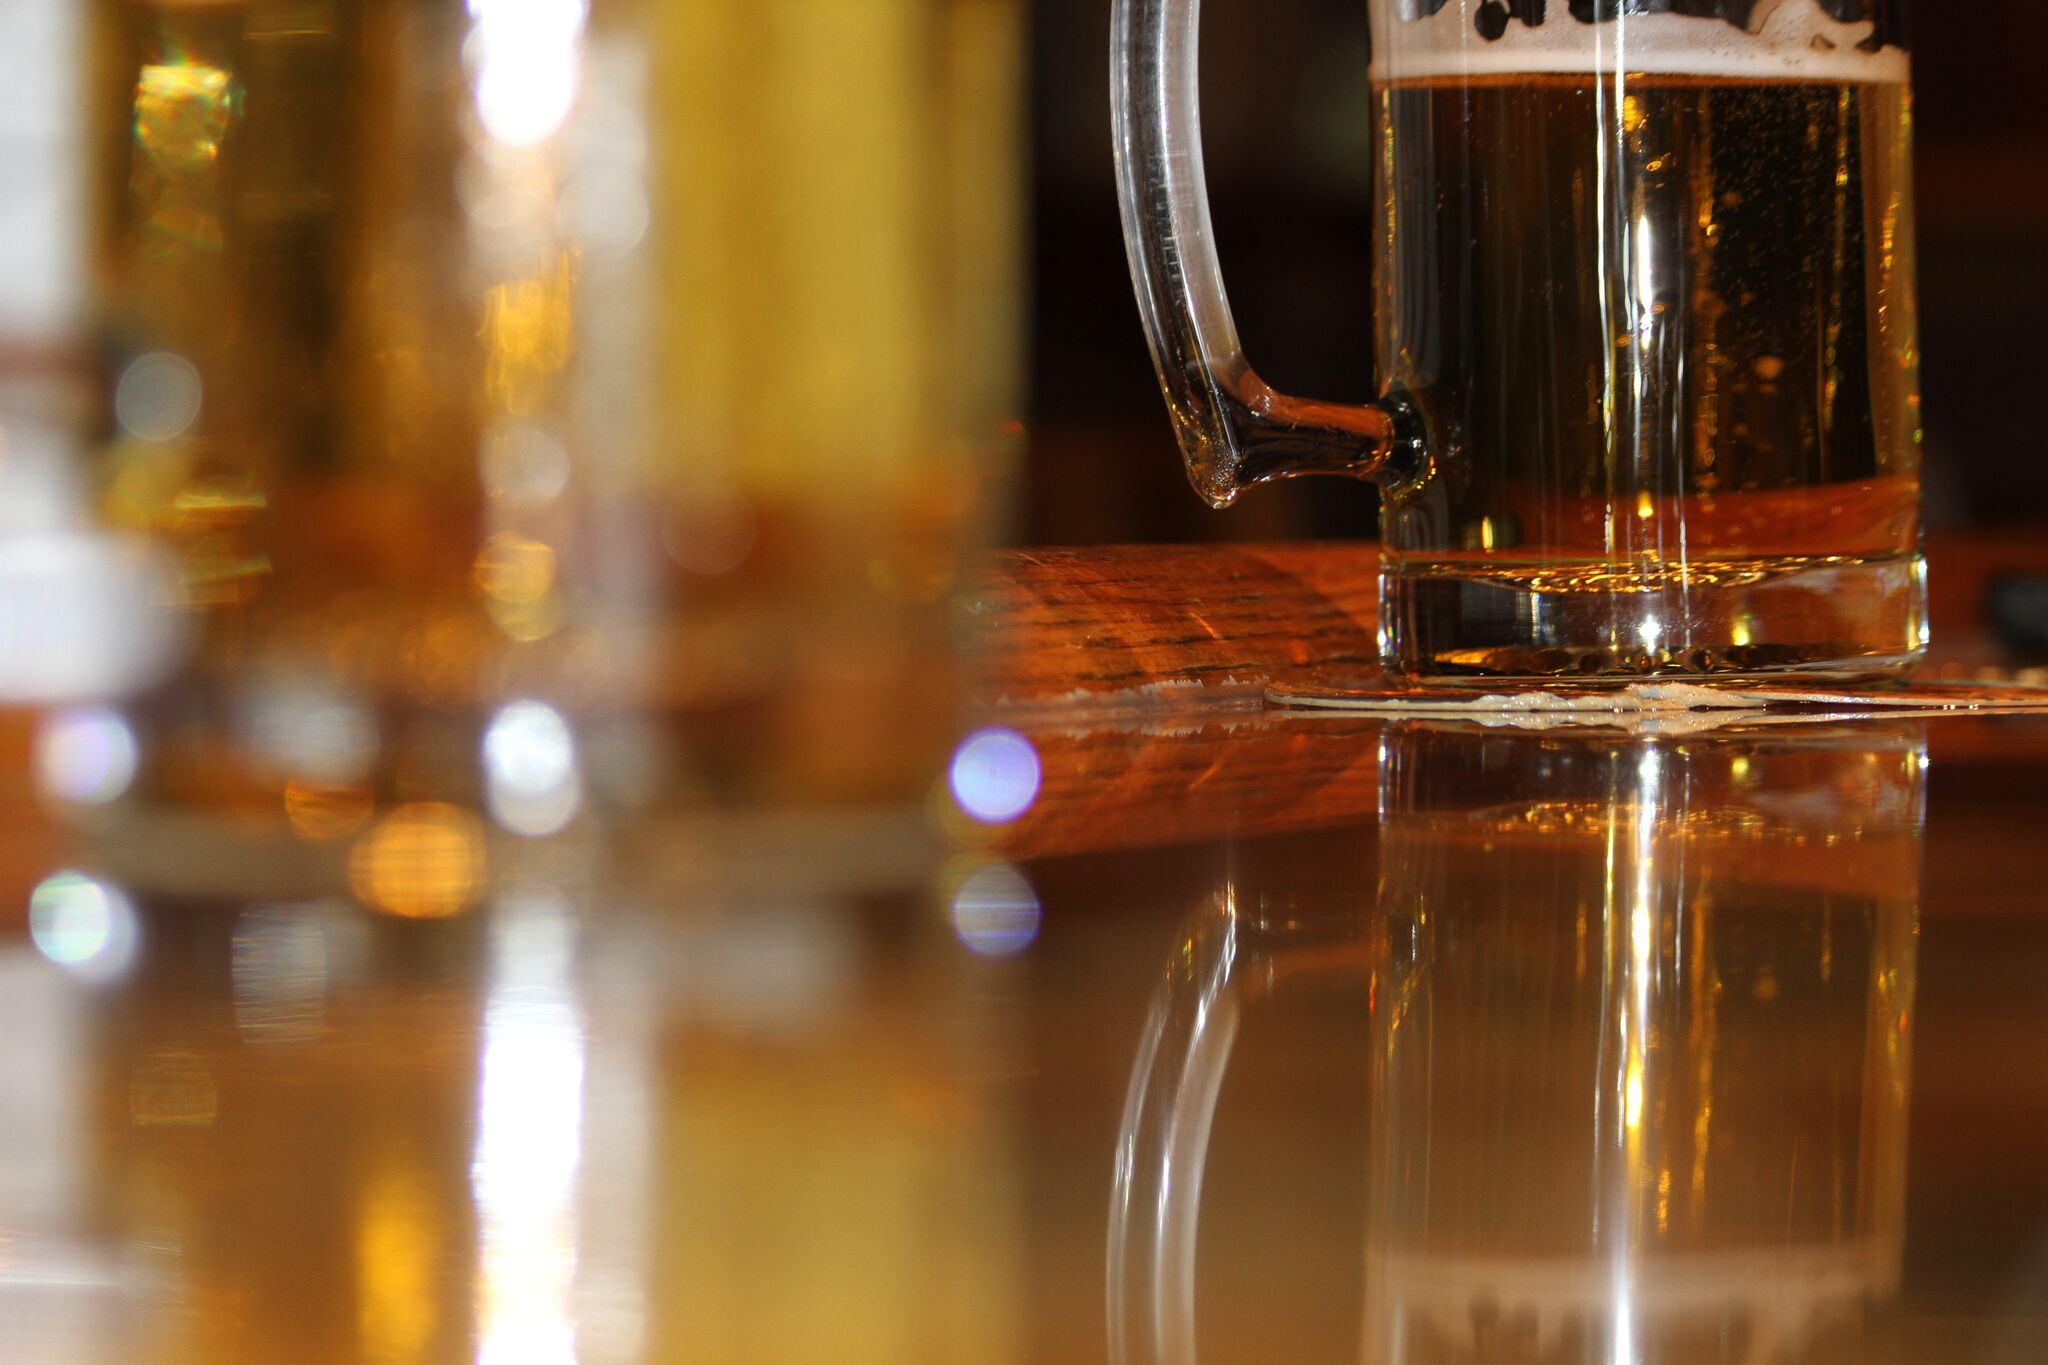 LauderAle brewery opens in Fort Lauderdale